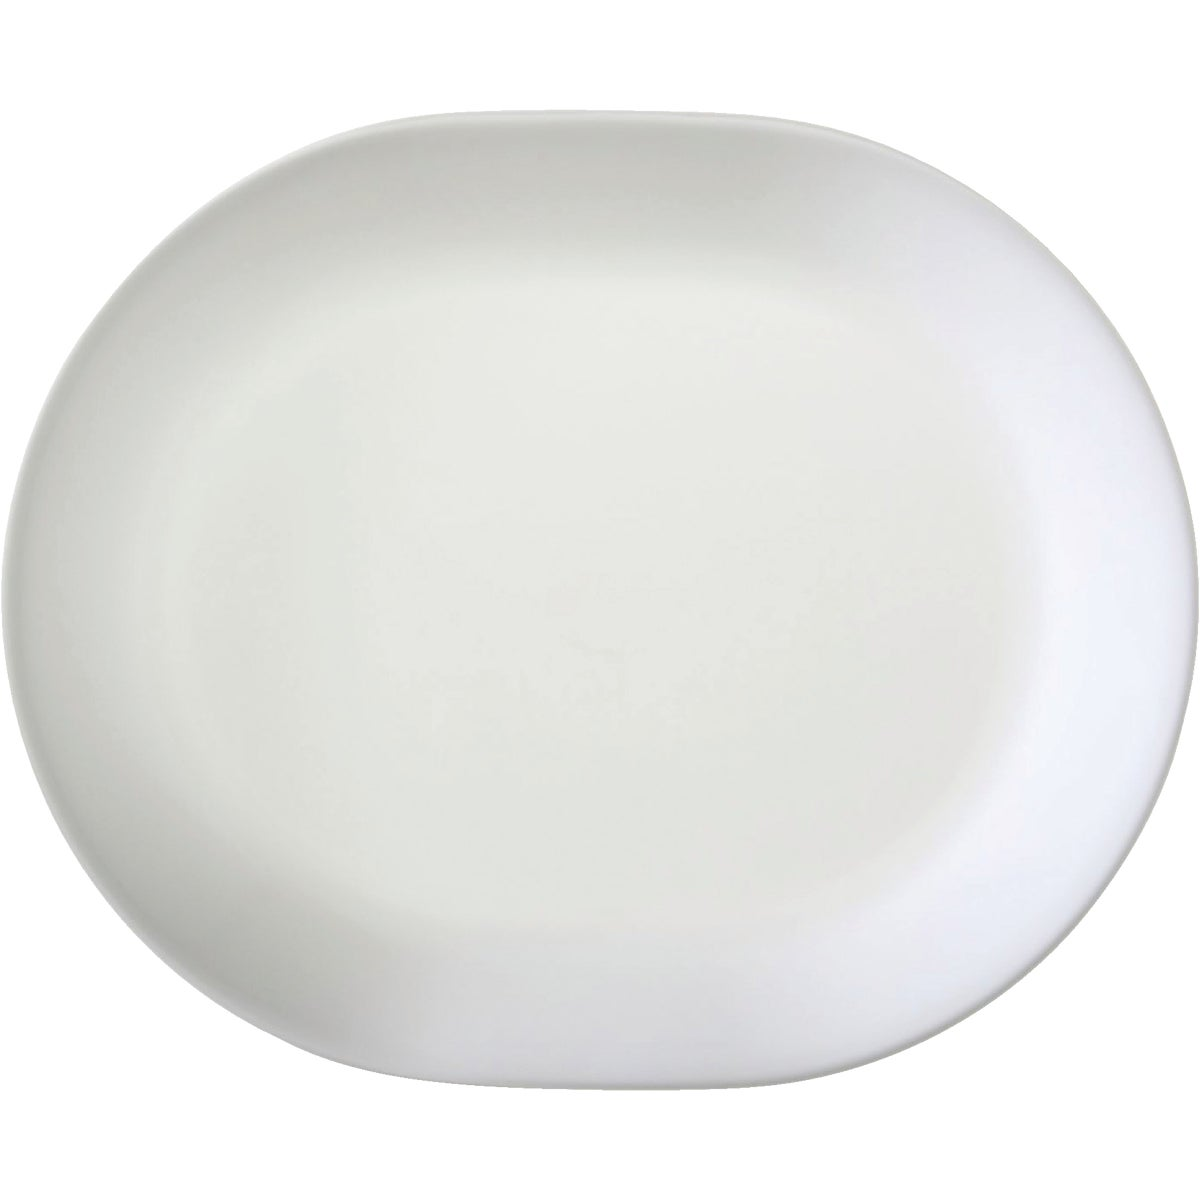 WHITE SERVING PLATTER - 6003110 by World Kitchen